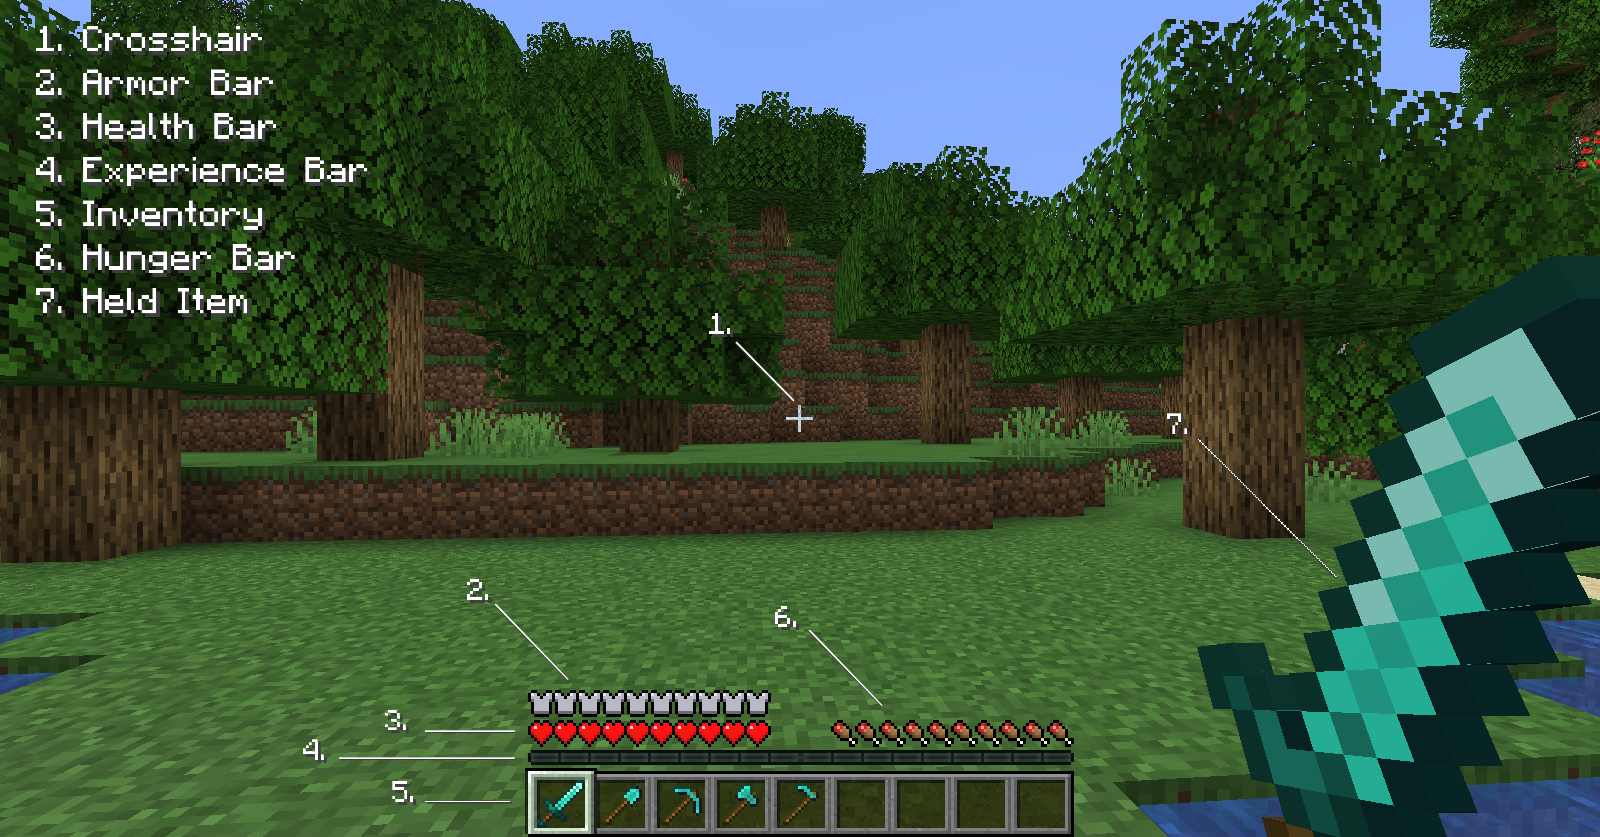 Heads-up display – Official Minecraft Wiki